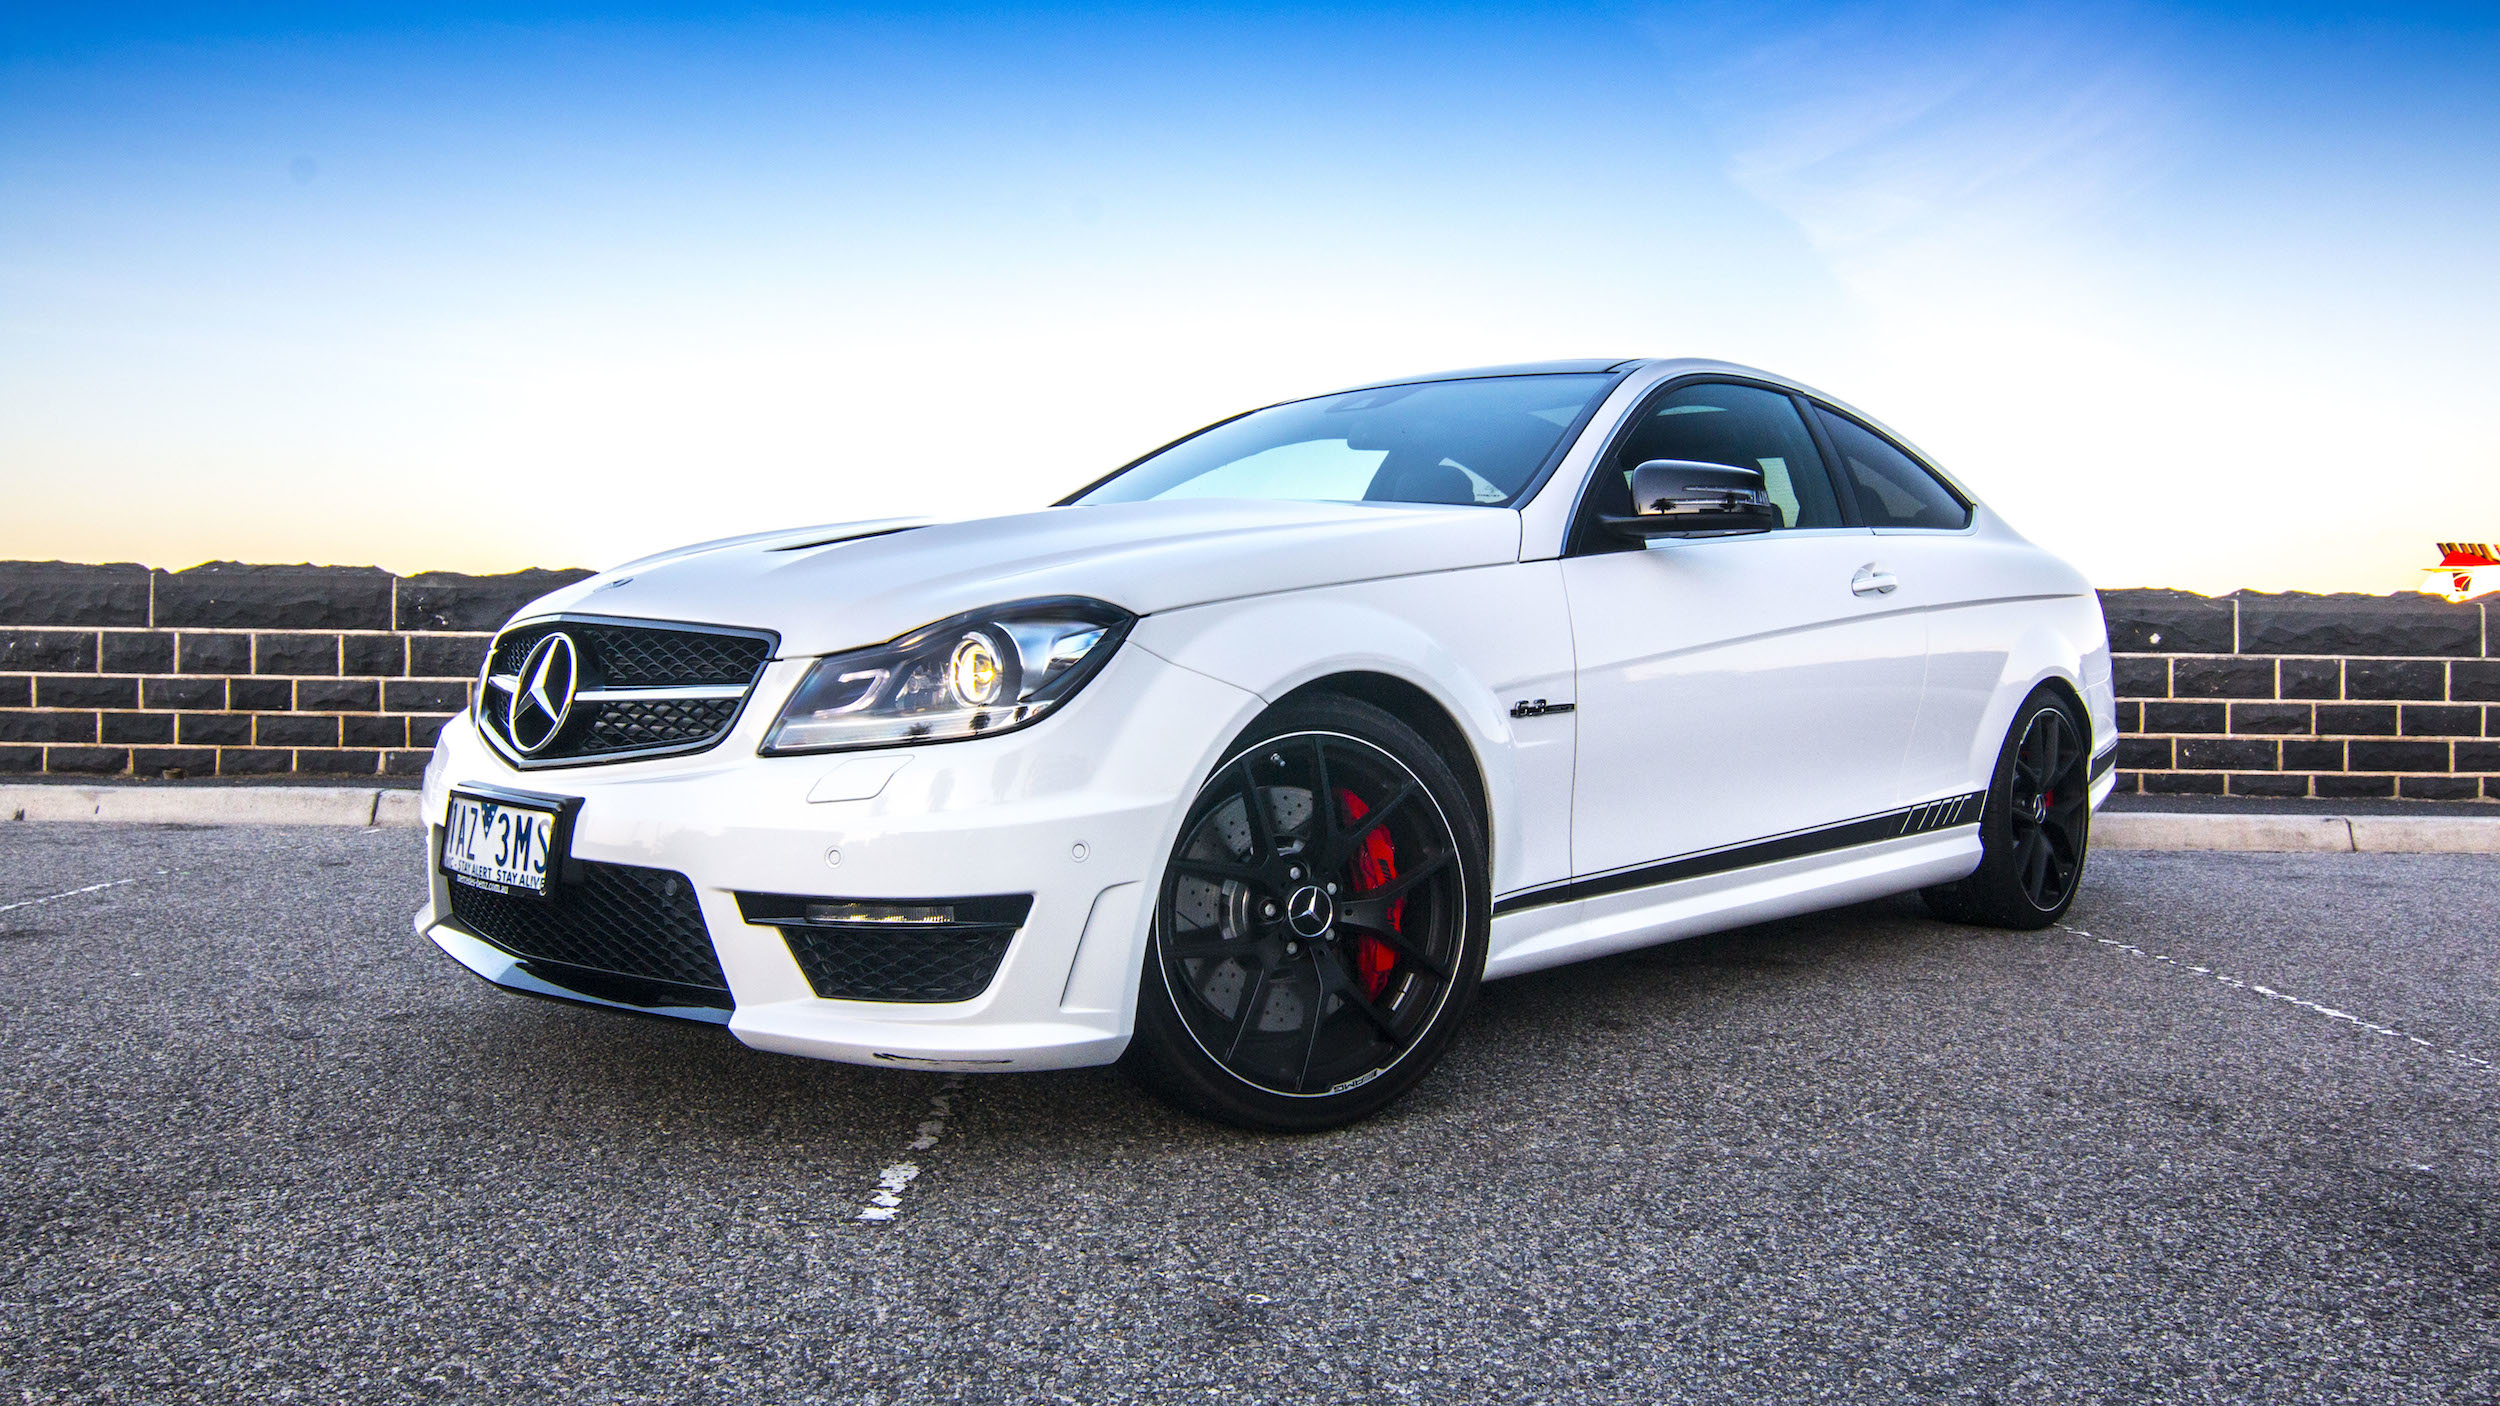 Bmw m4 v mercedes benz c63 amg edition 507 comparison for Bmw and mercedes benz